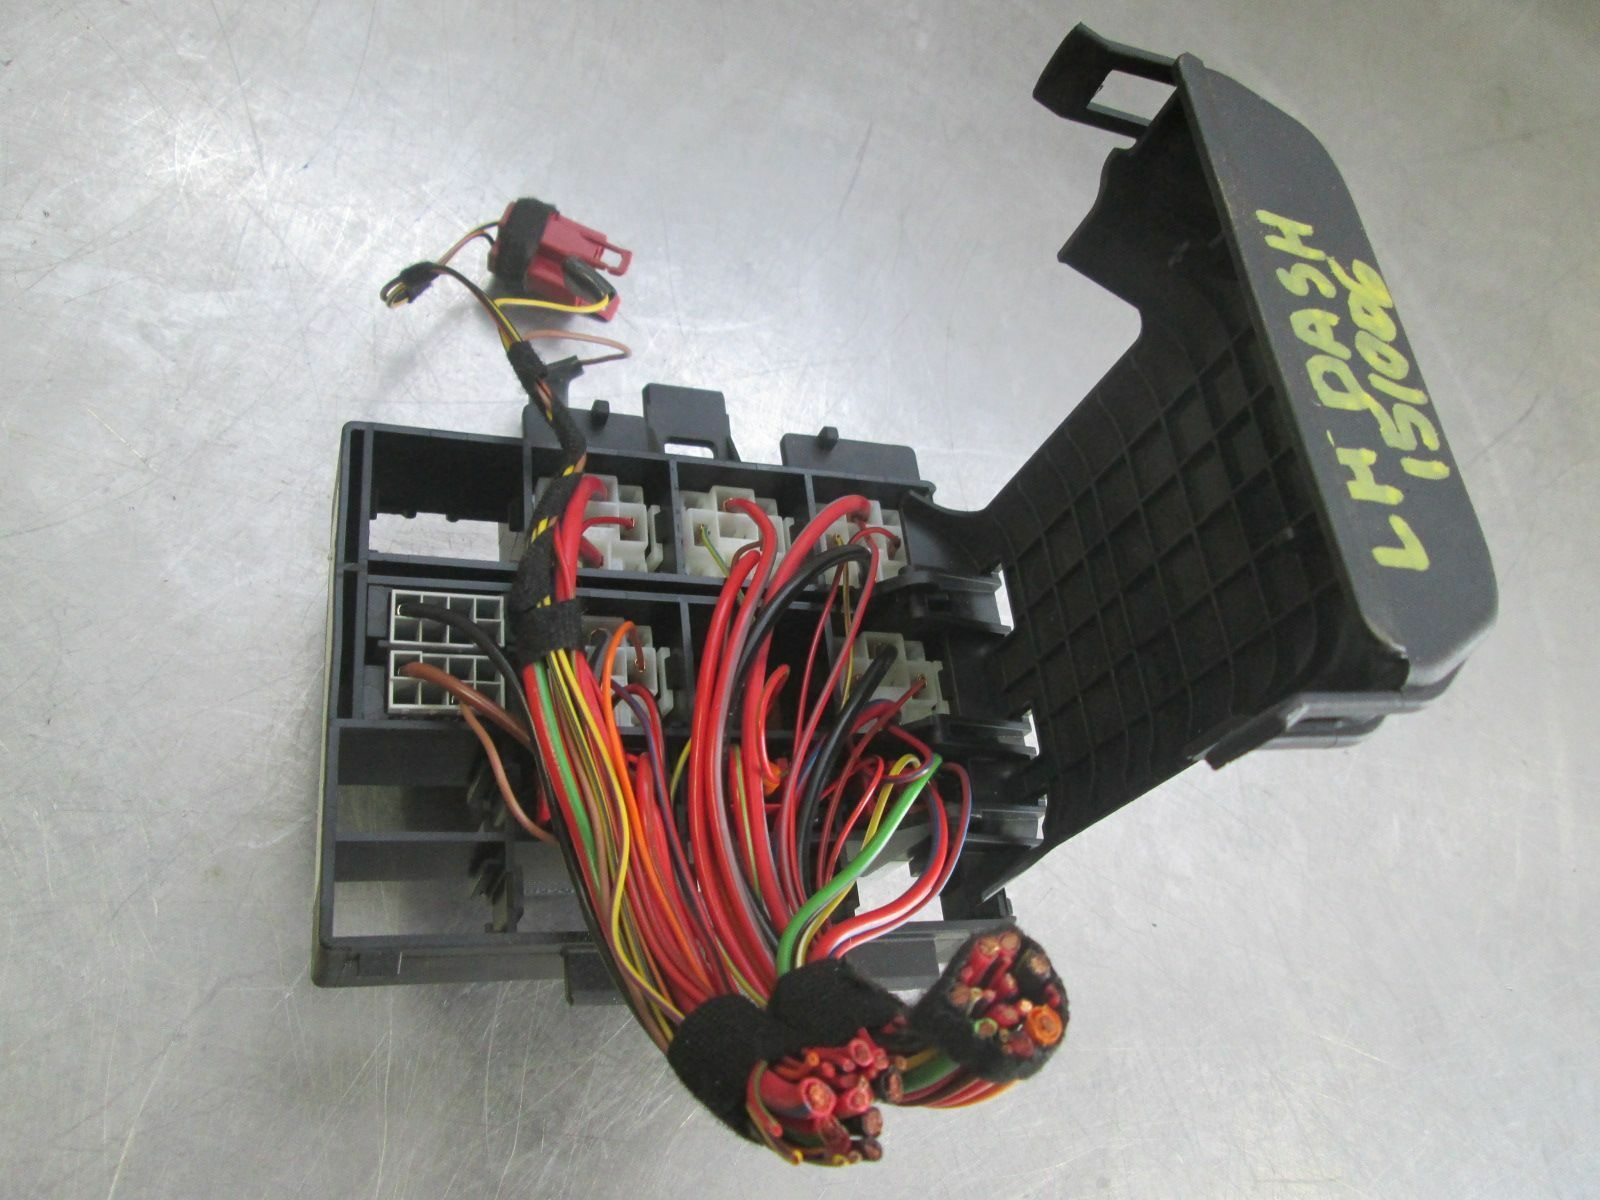 Fuse Box Porsche 911 Electrical Wiring Diagrams Cayenne 2011 Front Dash Relay Junction Block 99761011000 997 Cover